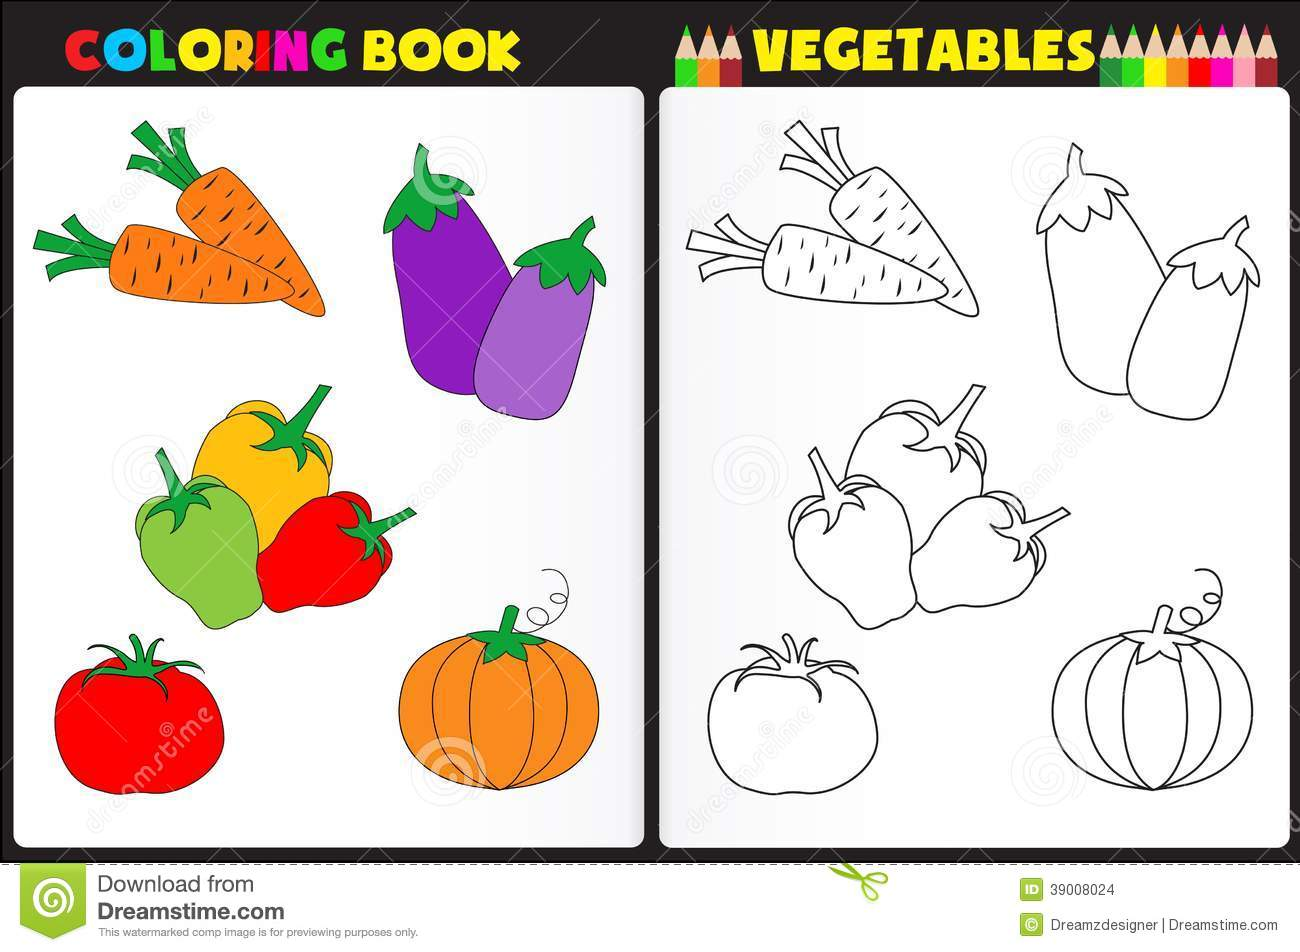 Royalty Free Stock Photo Download Coloring Book Vegetables